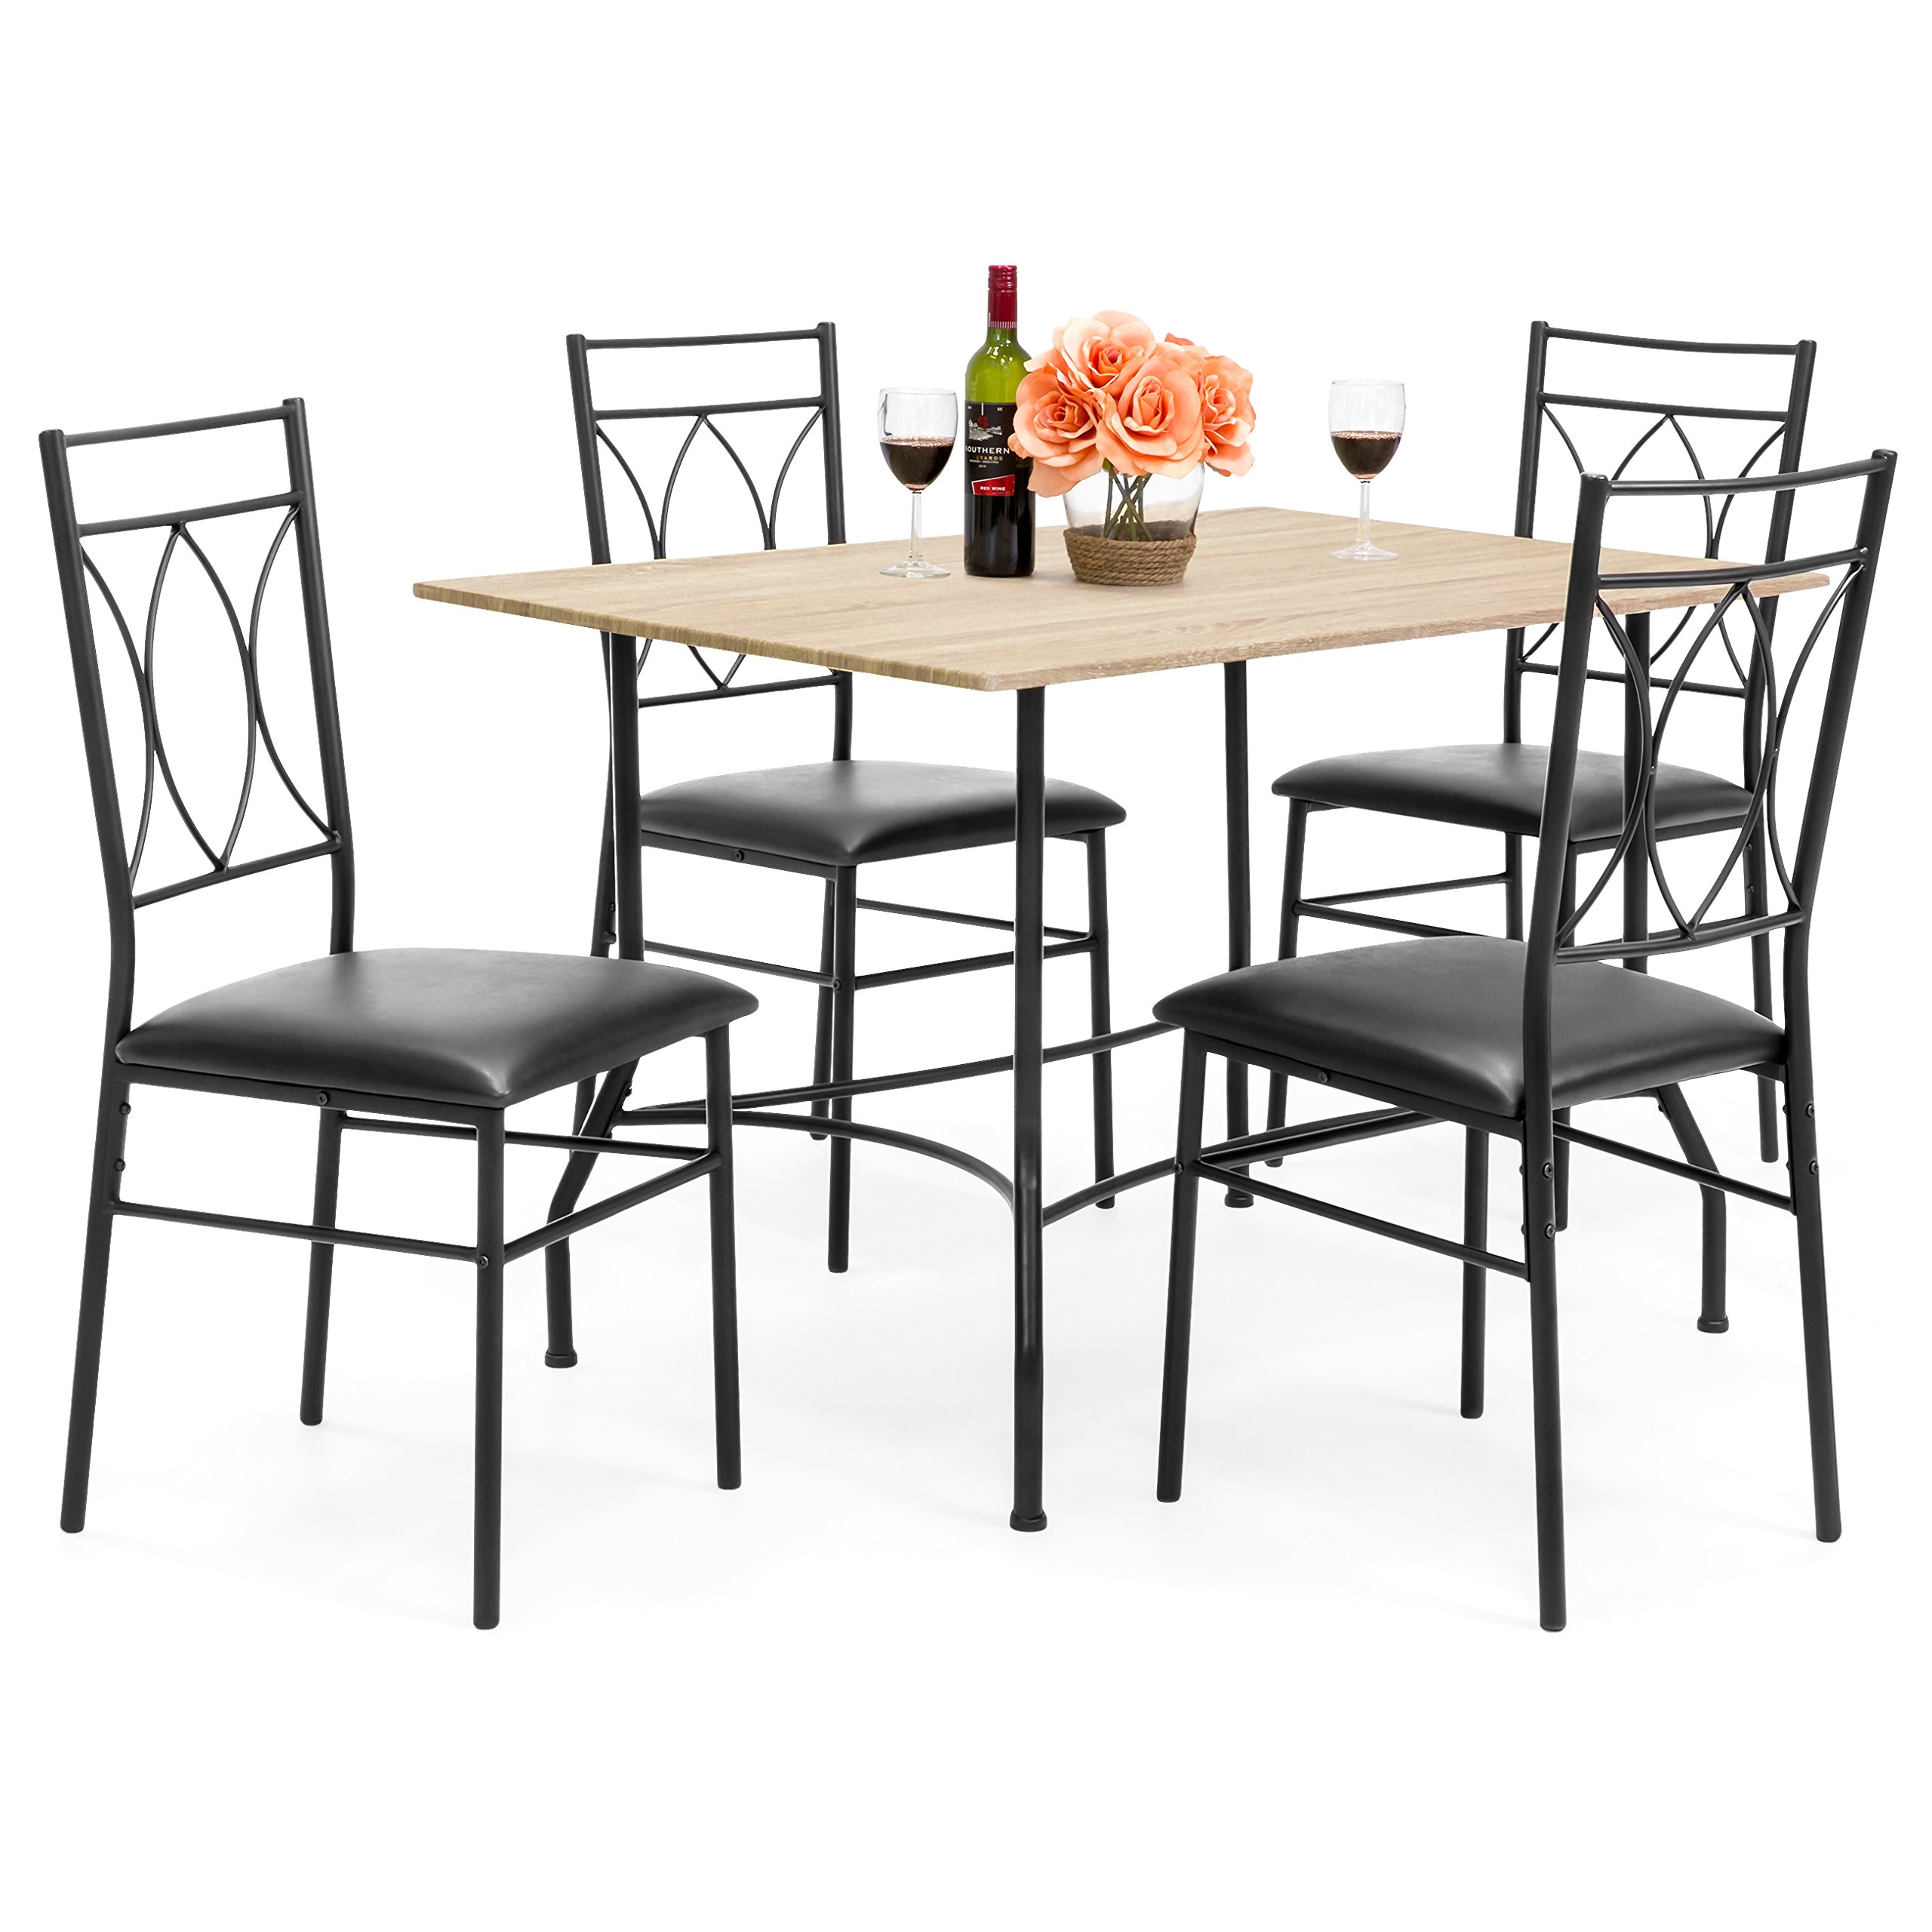 Clearance Dining Sets: CLEARANCE Outdoor Patio Dining Set For 4 Wood Table And